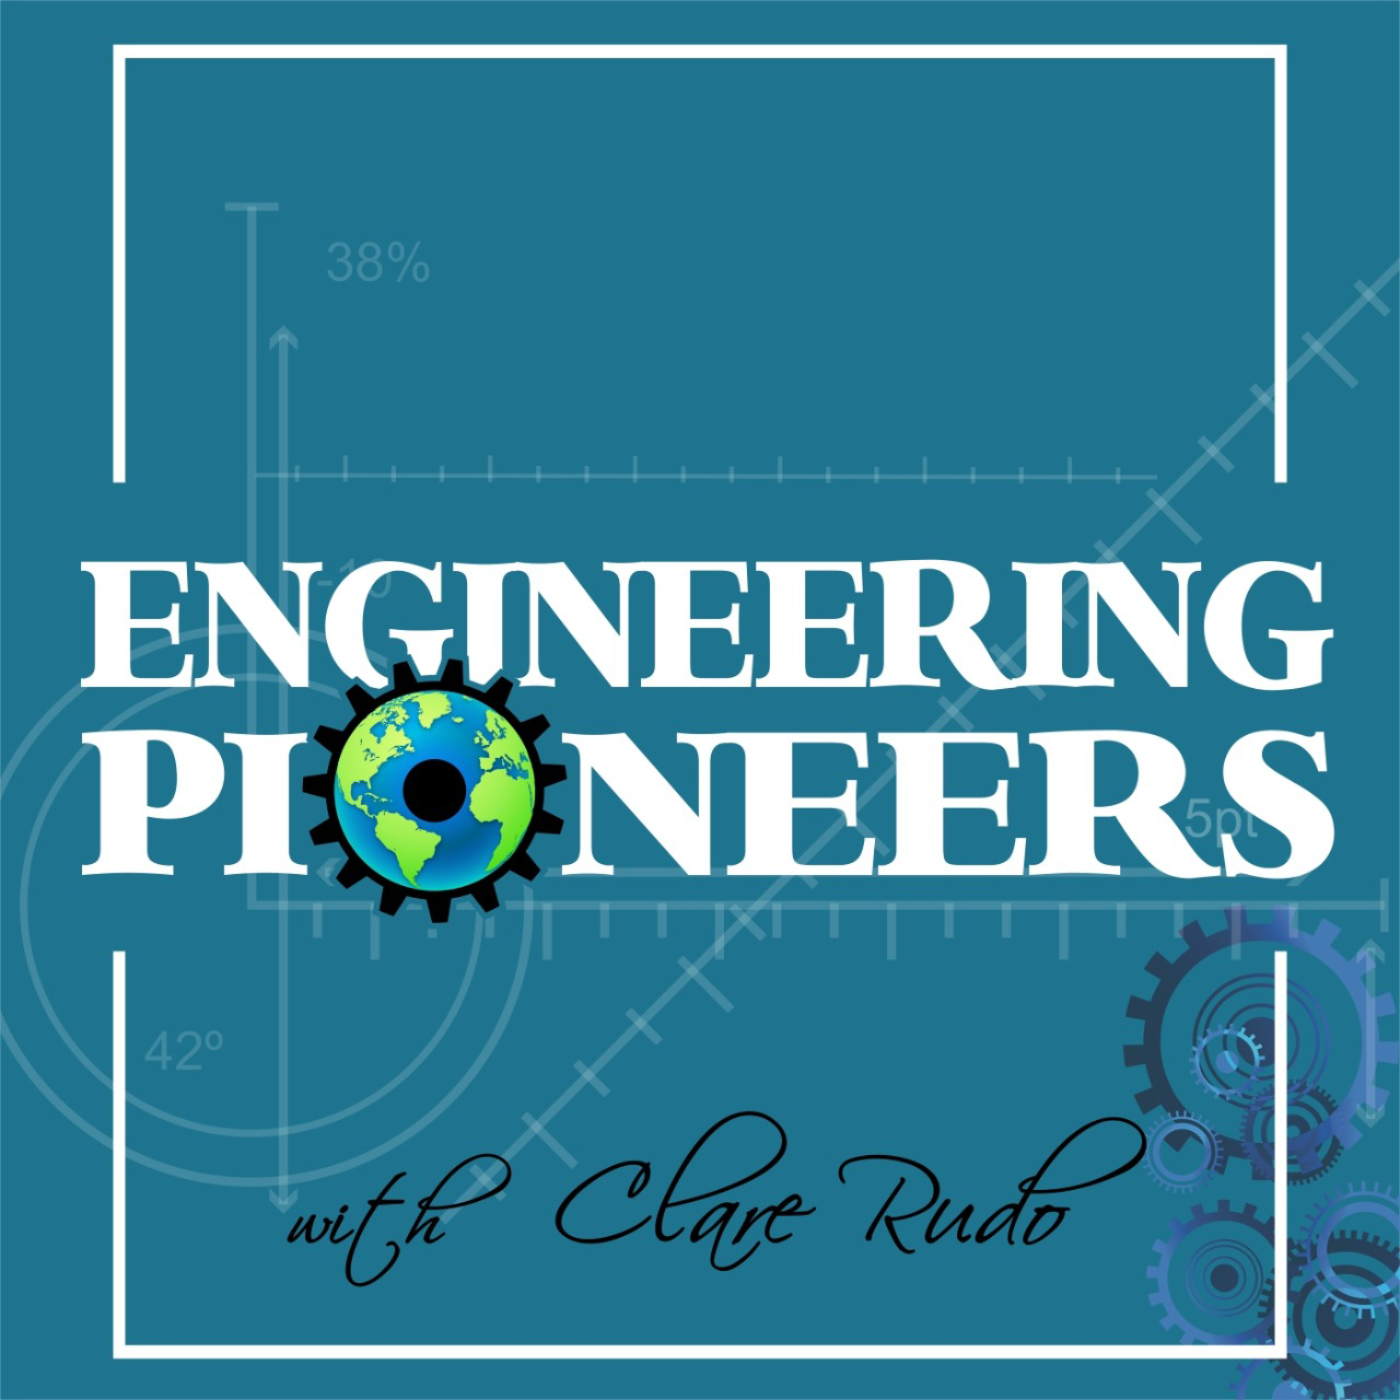 Engineering Pioneers around the world